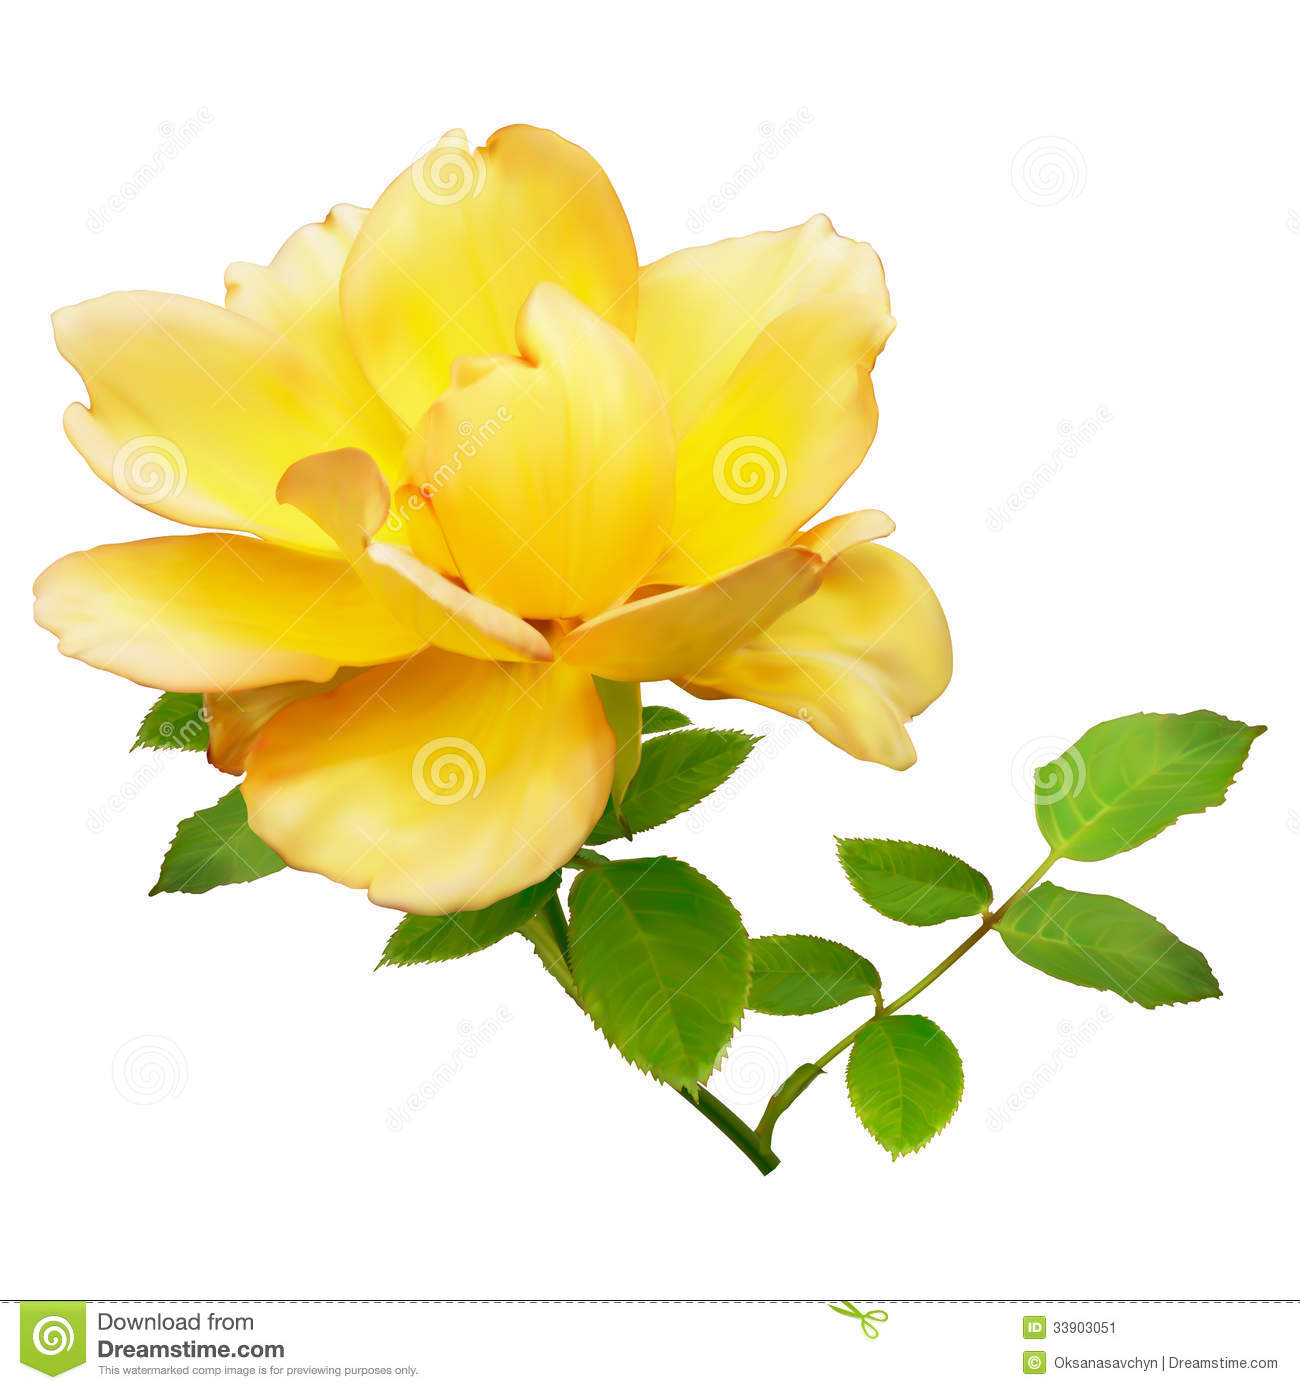 yellow rose stock illustration illustration of decorative